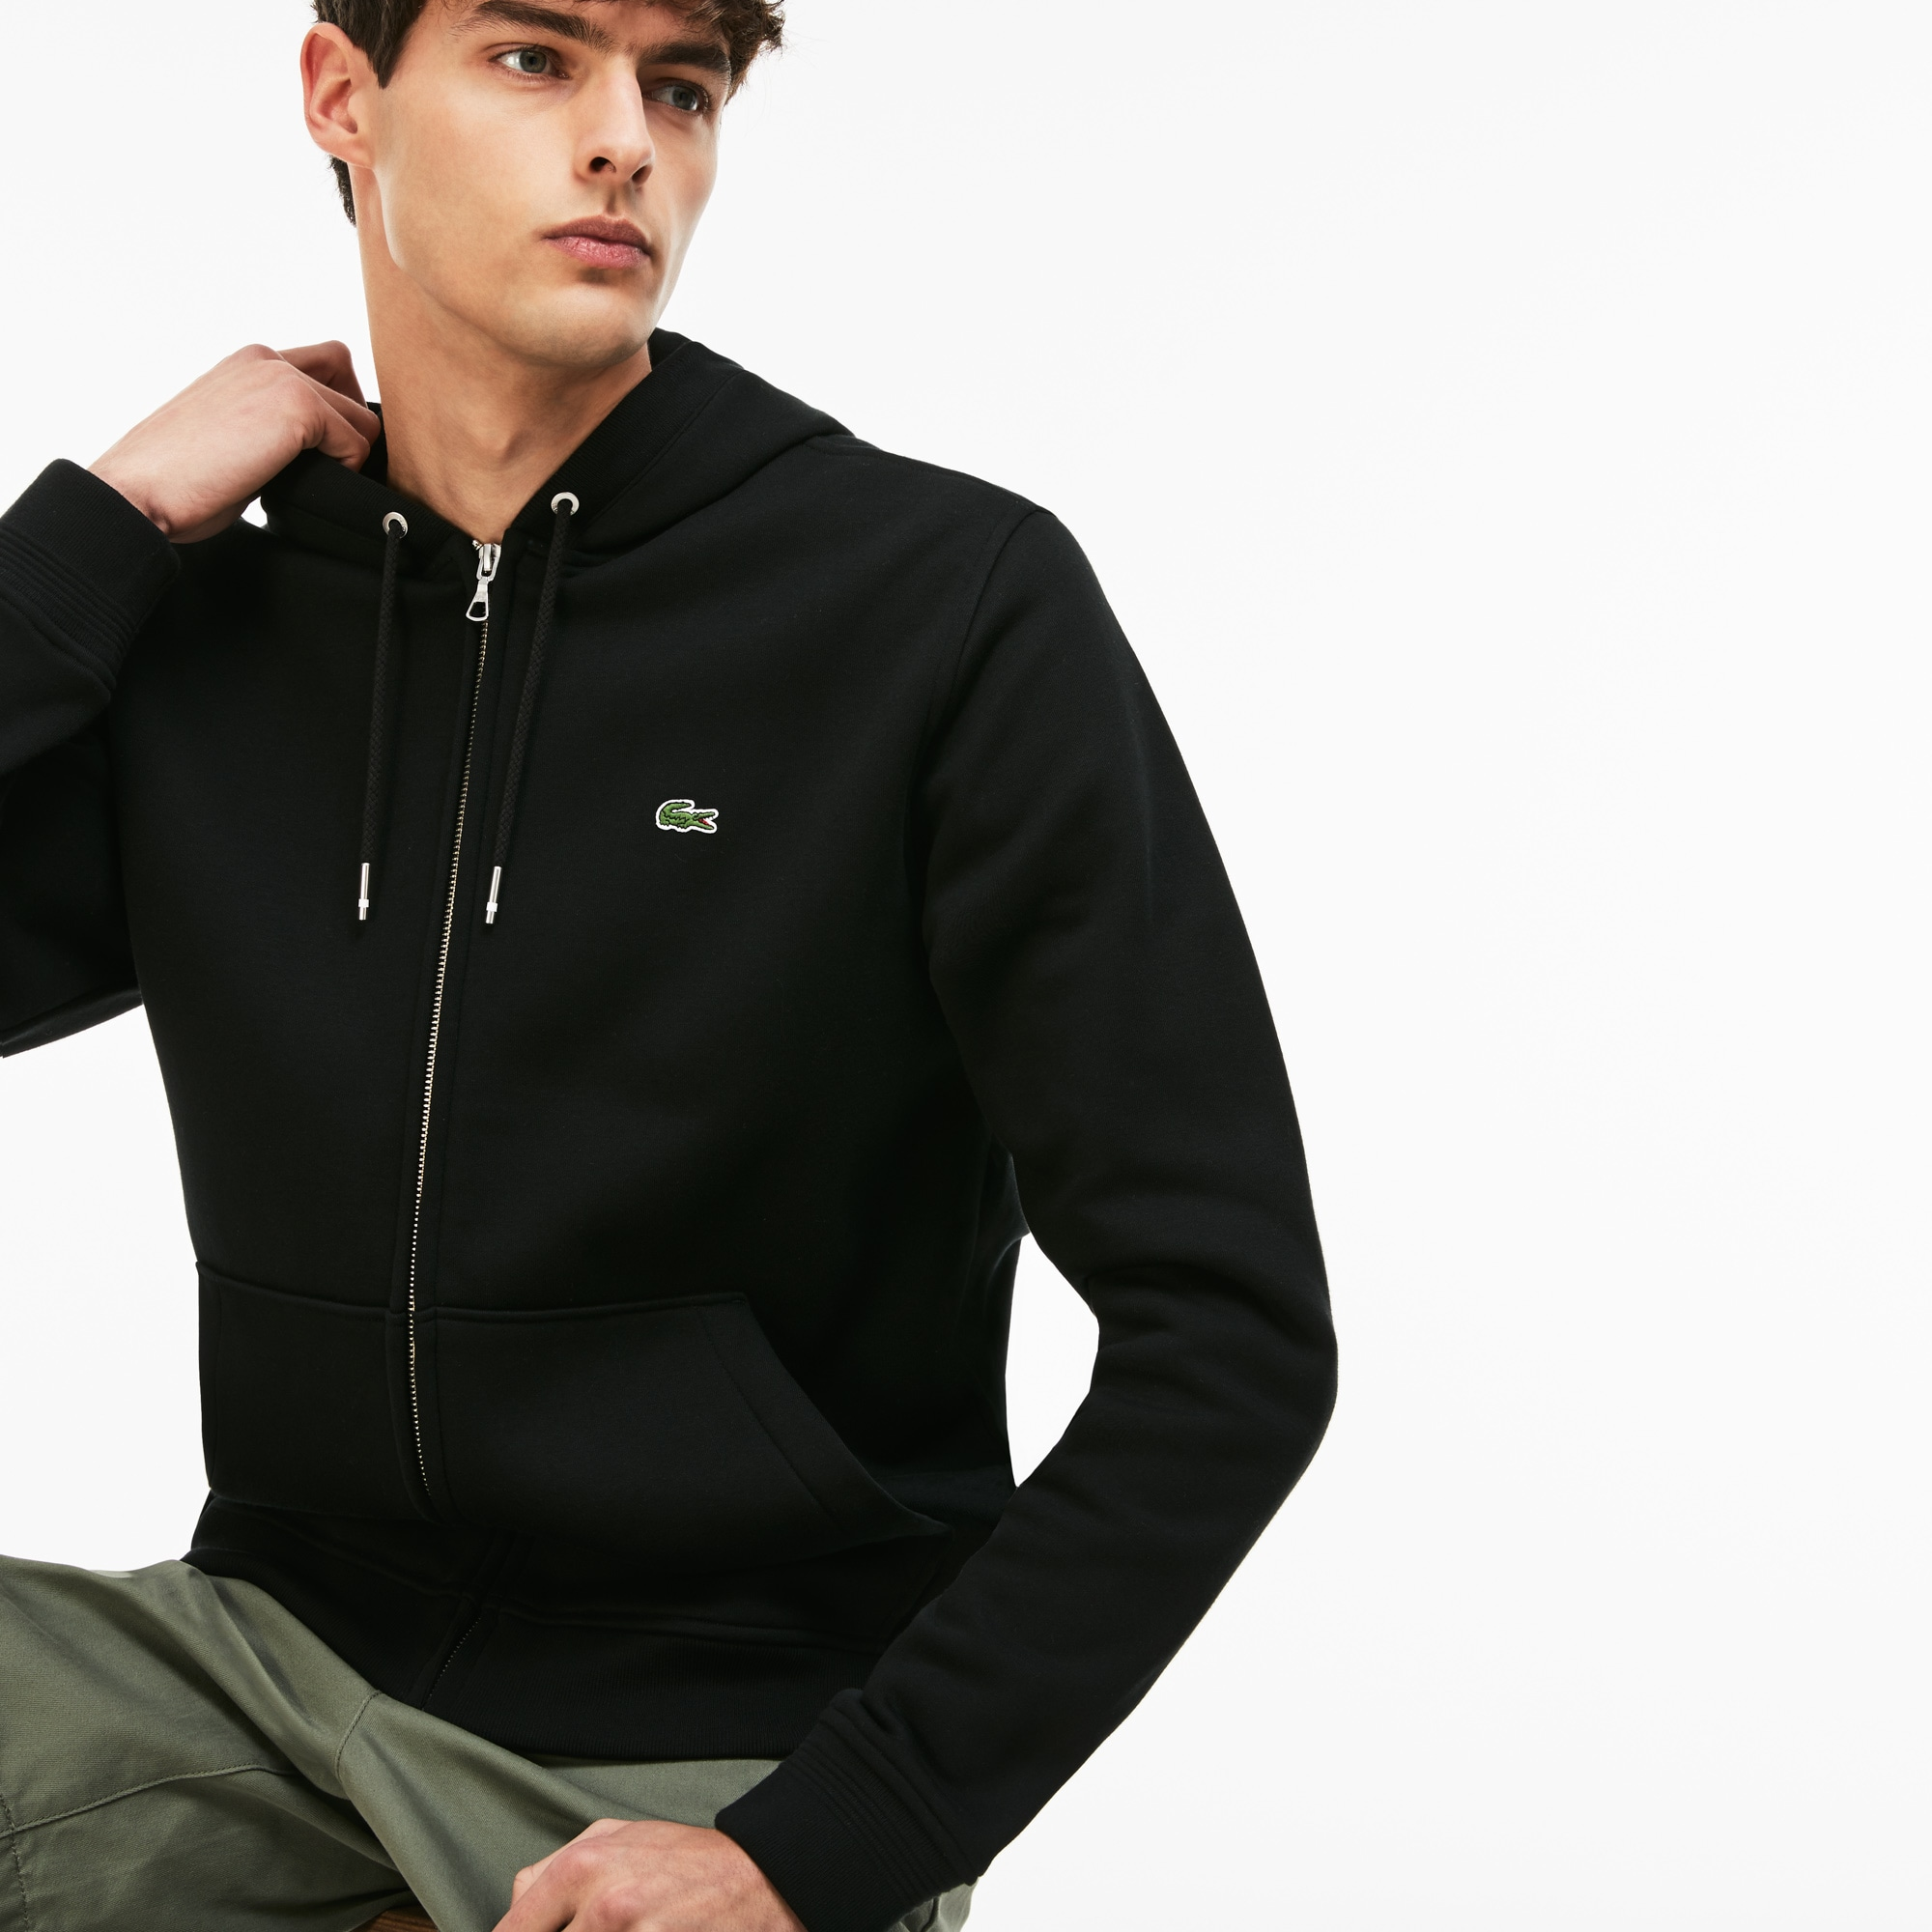 Men's Hooded Zip Brushed Sweatshirt